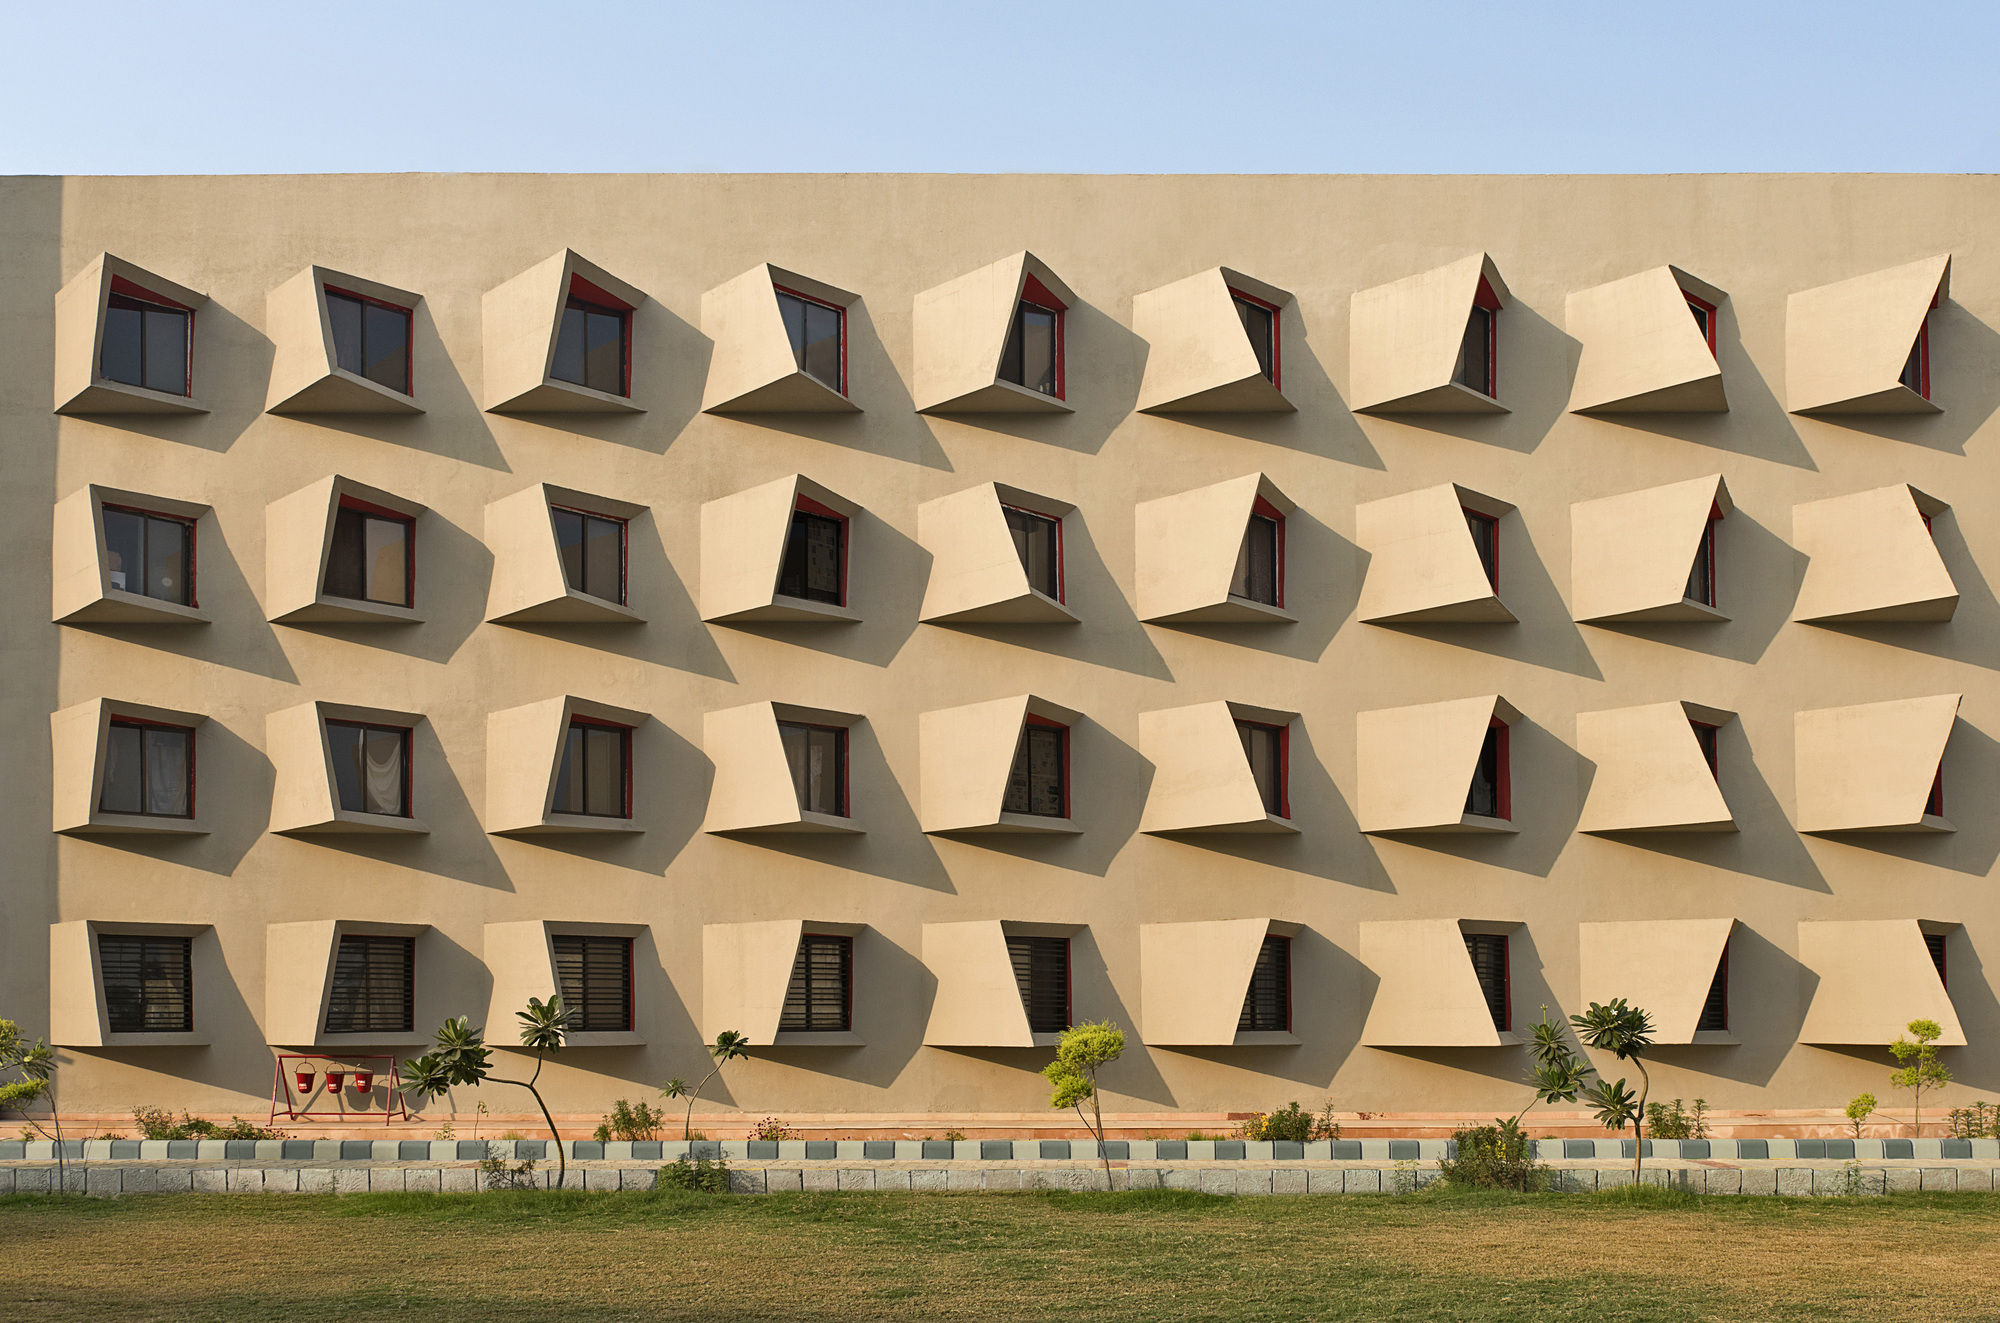 Housing architecture and design in india archdaily